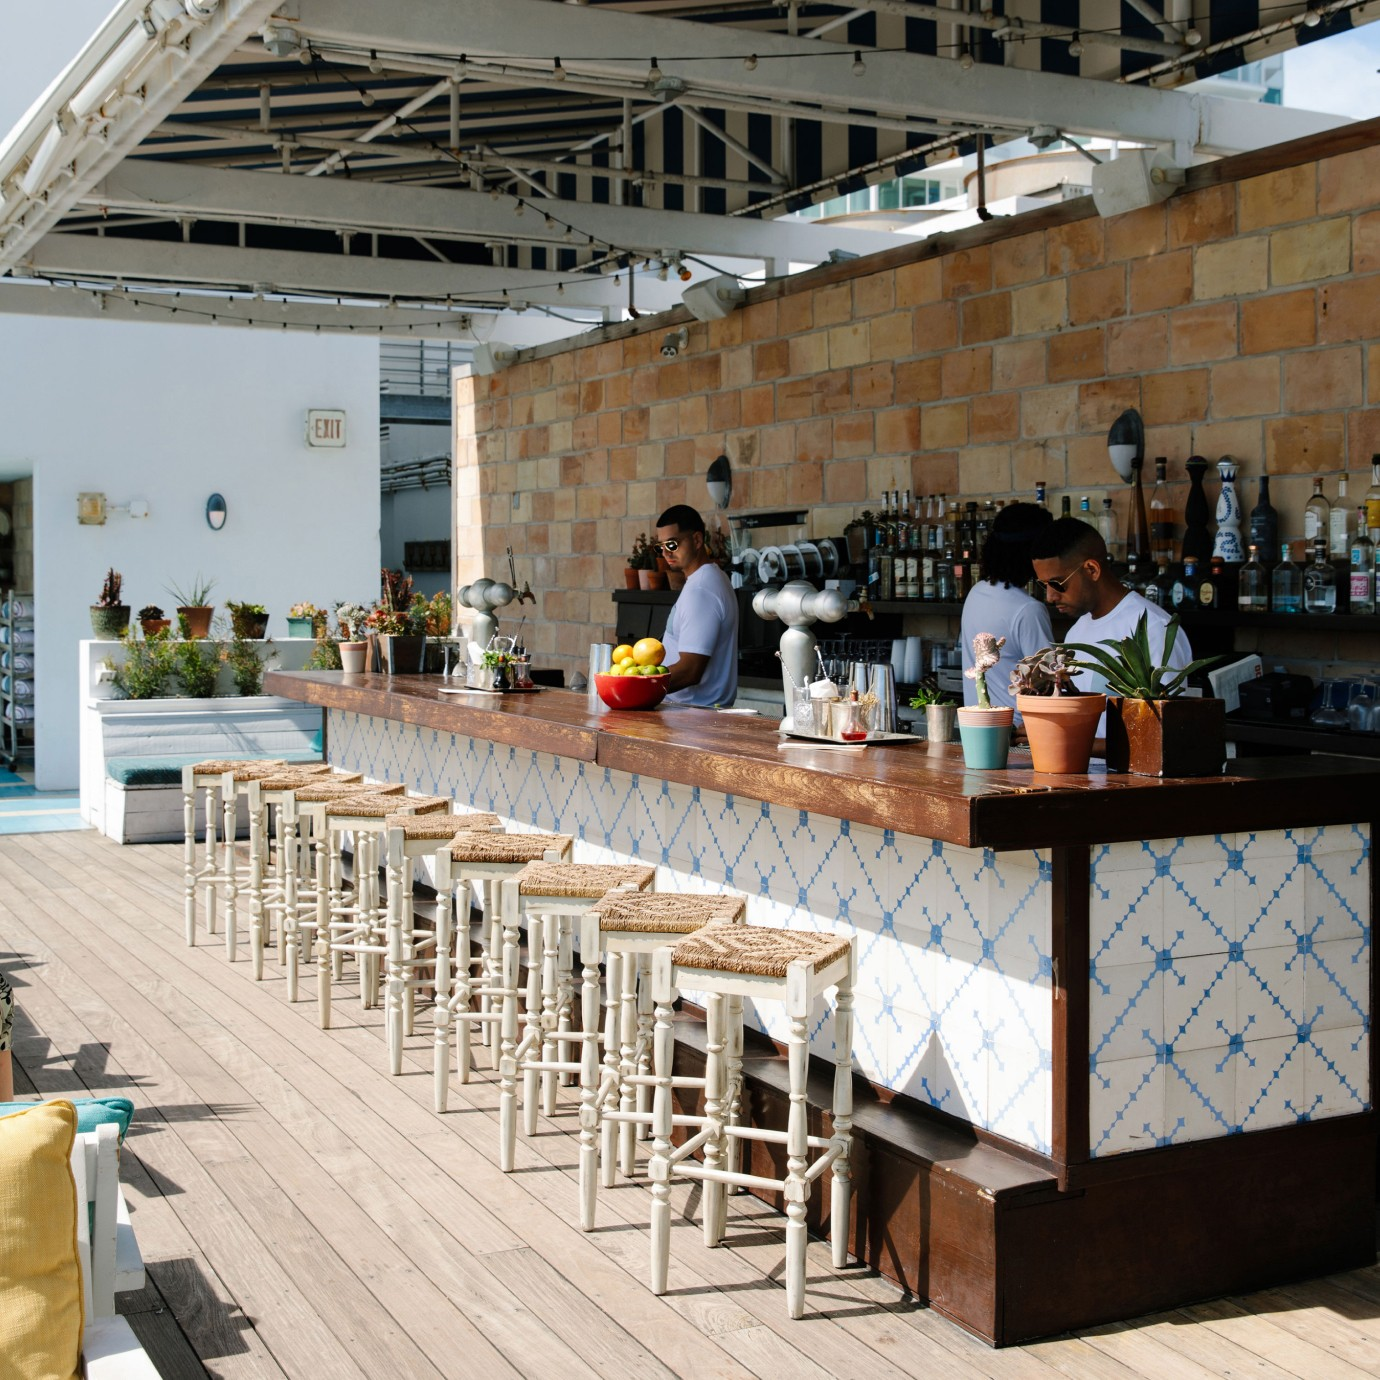 A outdoor bar with two barman.